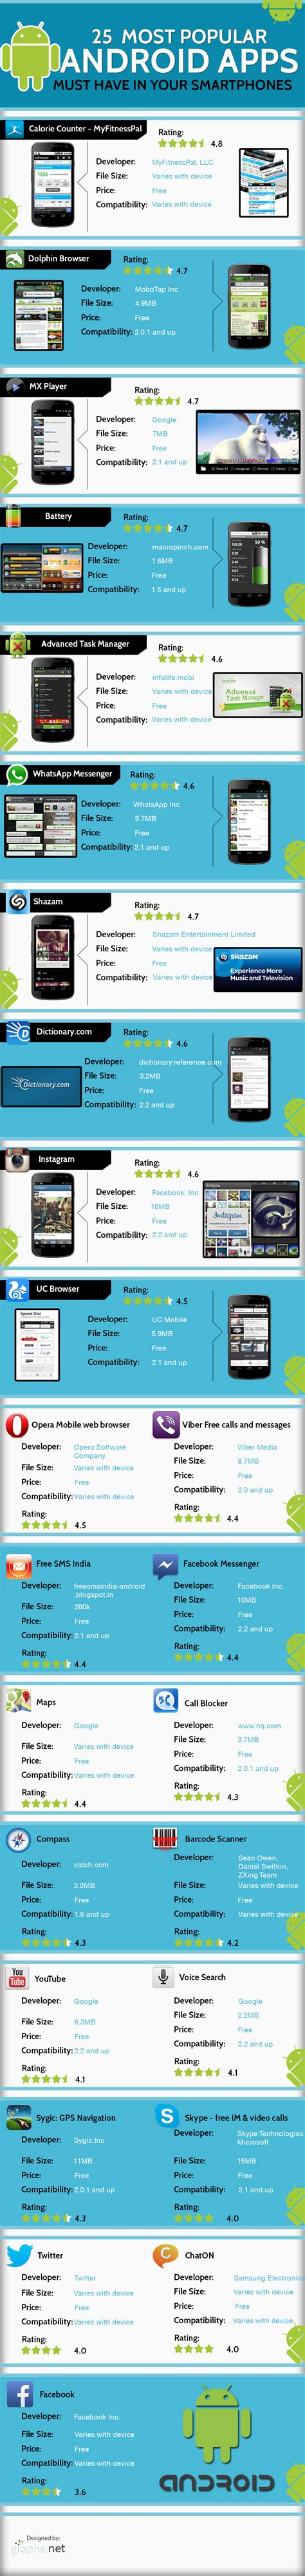 most popular android phones the most popular 25 android apps must in your smartphones infographic top apps